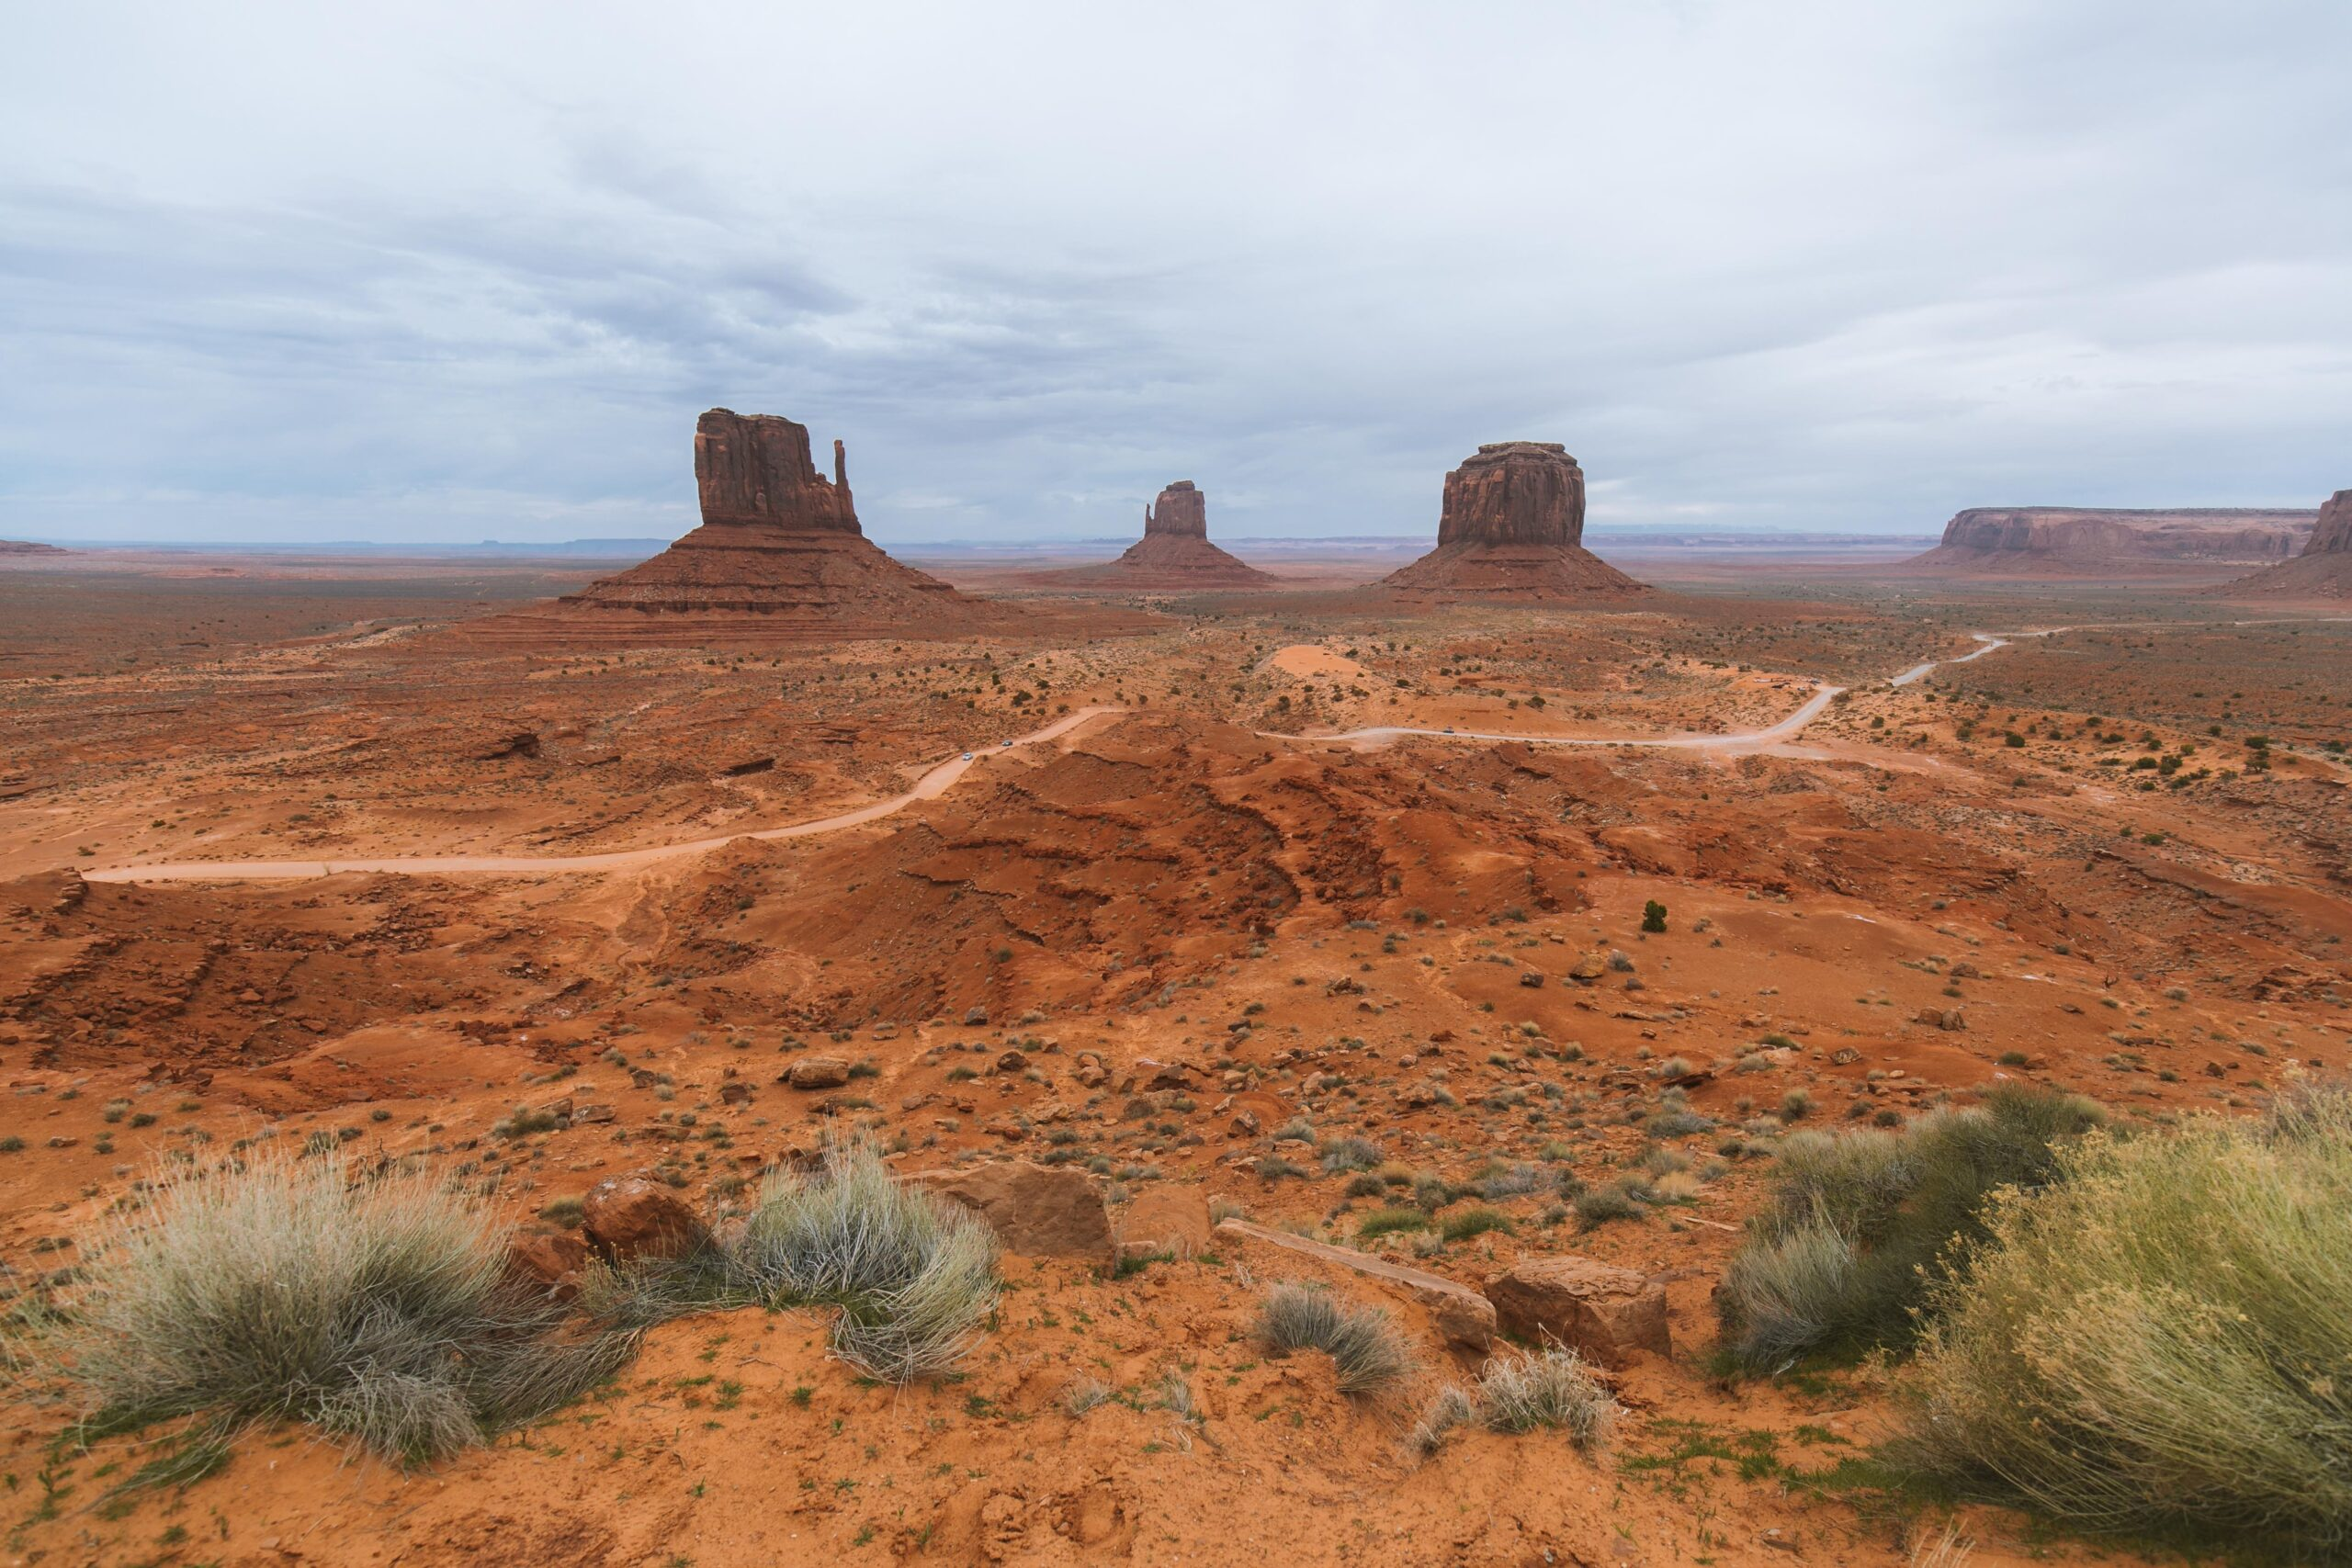 Boondocking in Monument Valley, Arizona